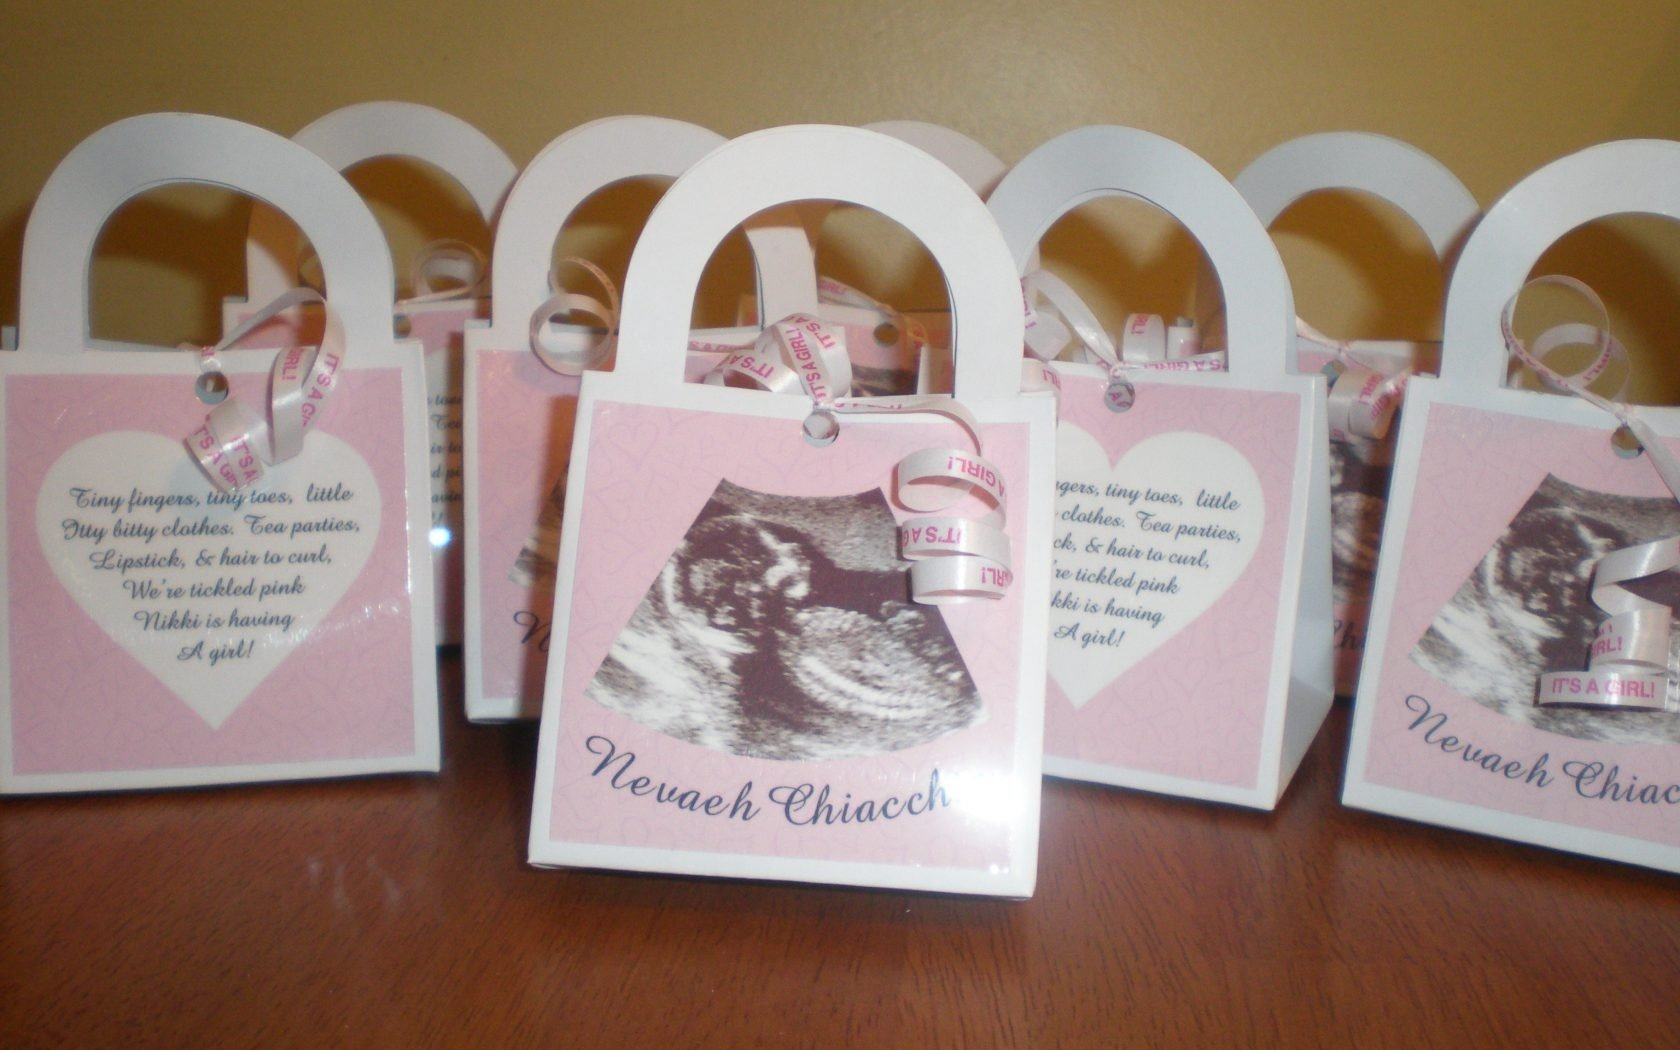 10 Perfect Small Thank You Gift Ideas ideas wonderful gifts for guest at baby shower thank you gift guests 2021